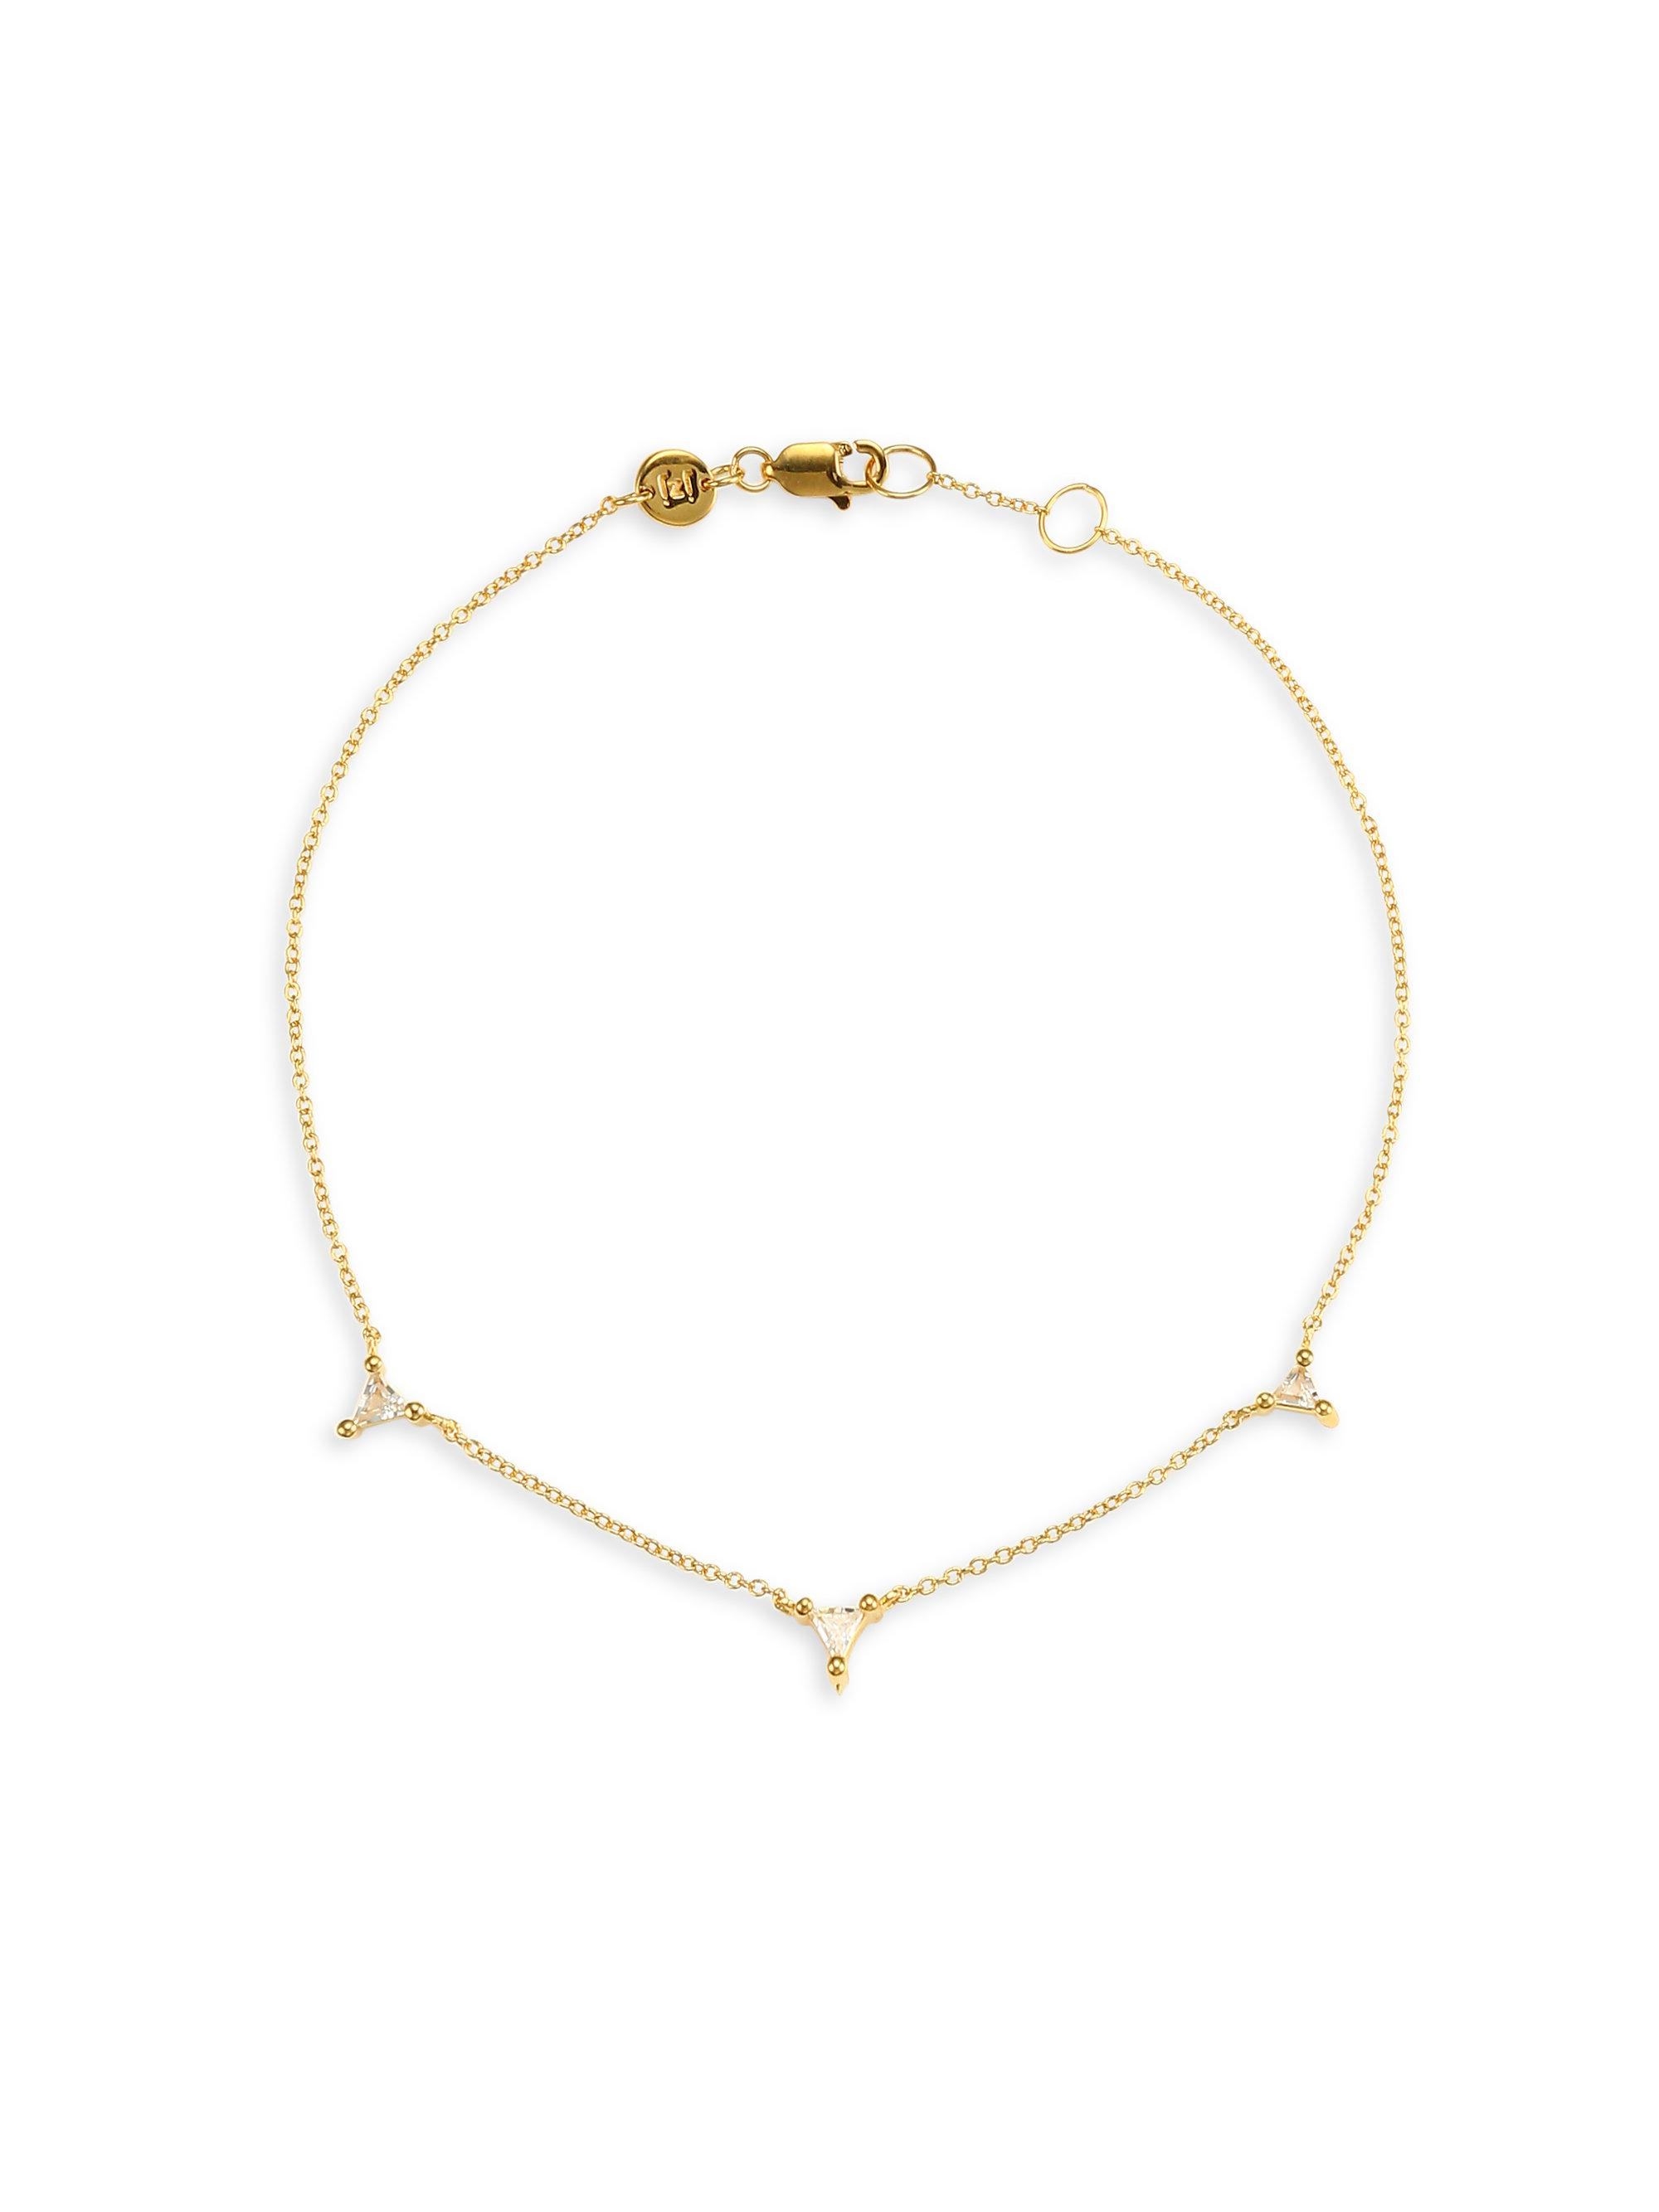 buy by breastmilk ryo image products treasures sea keepsake anklet